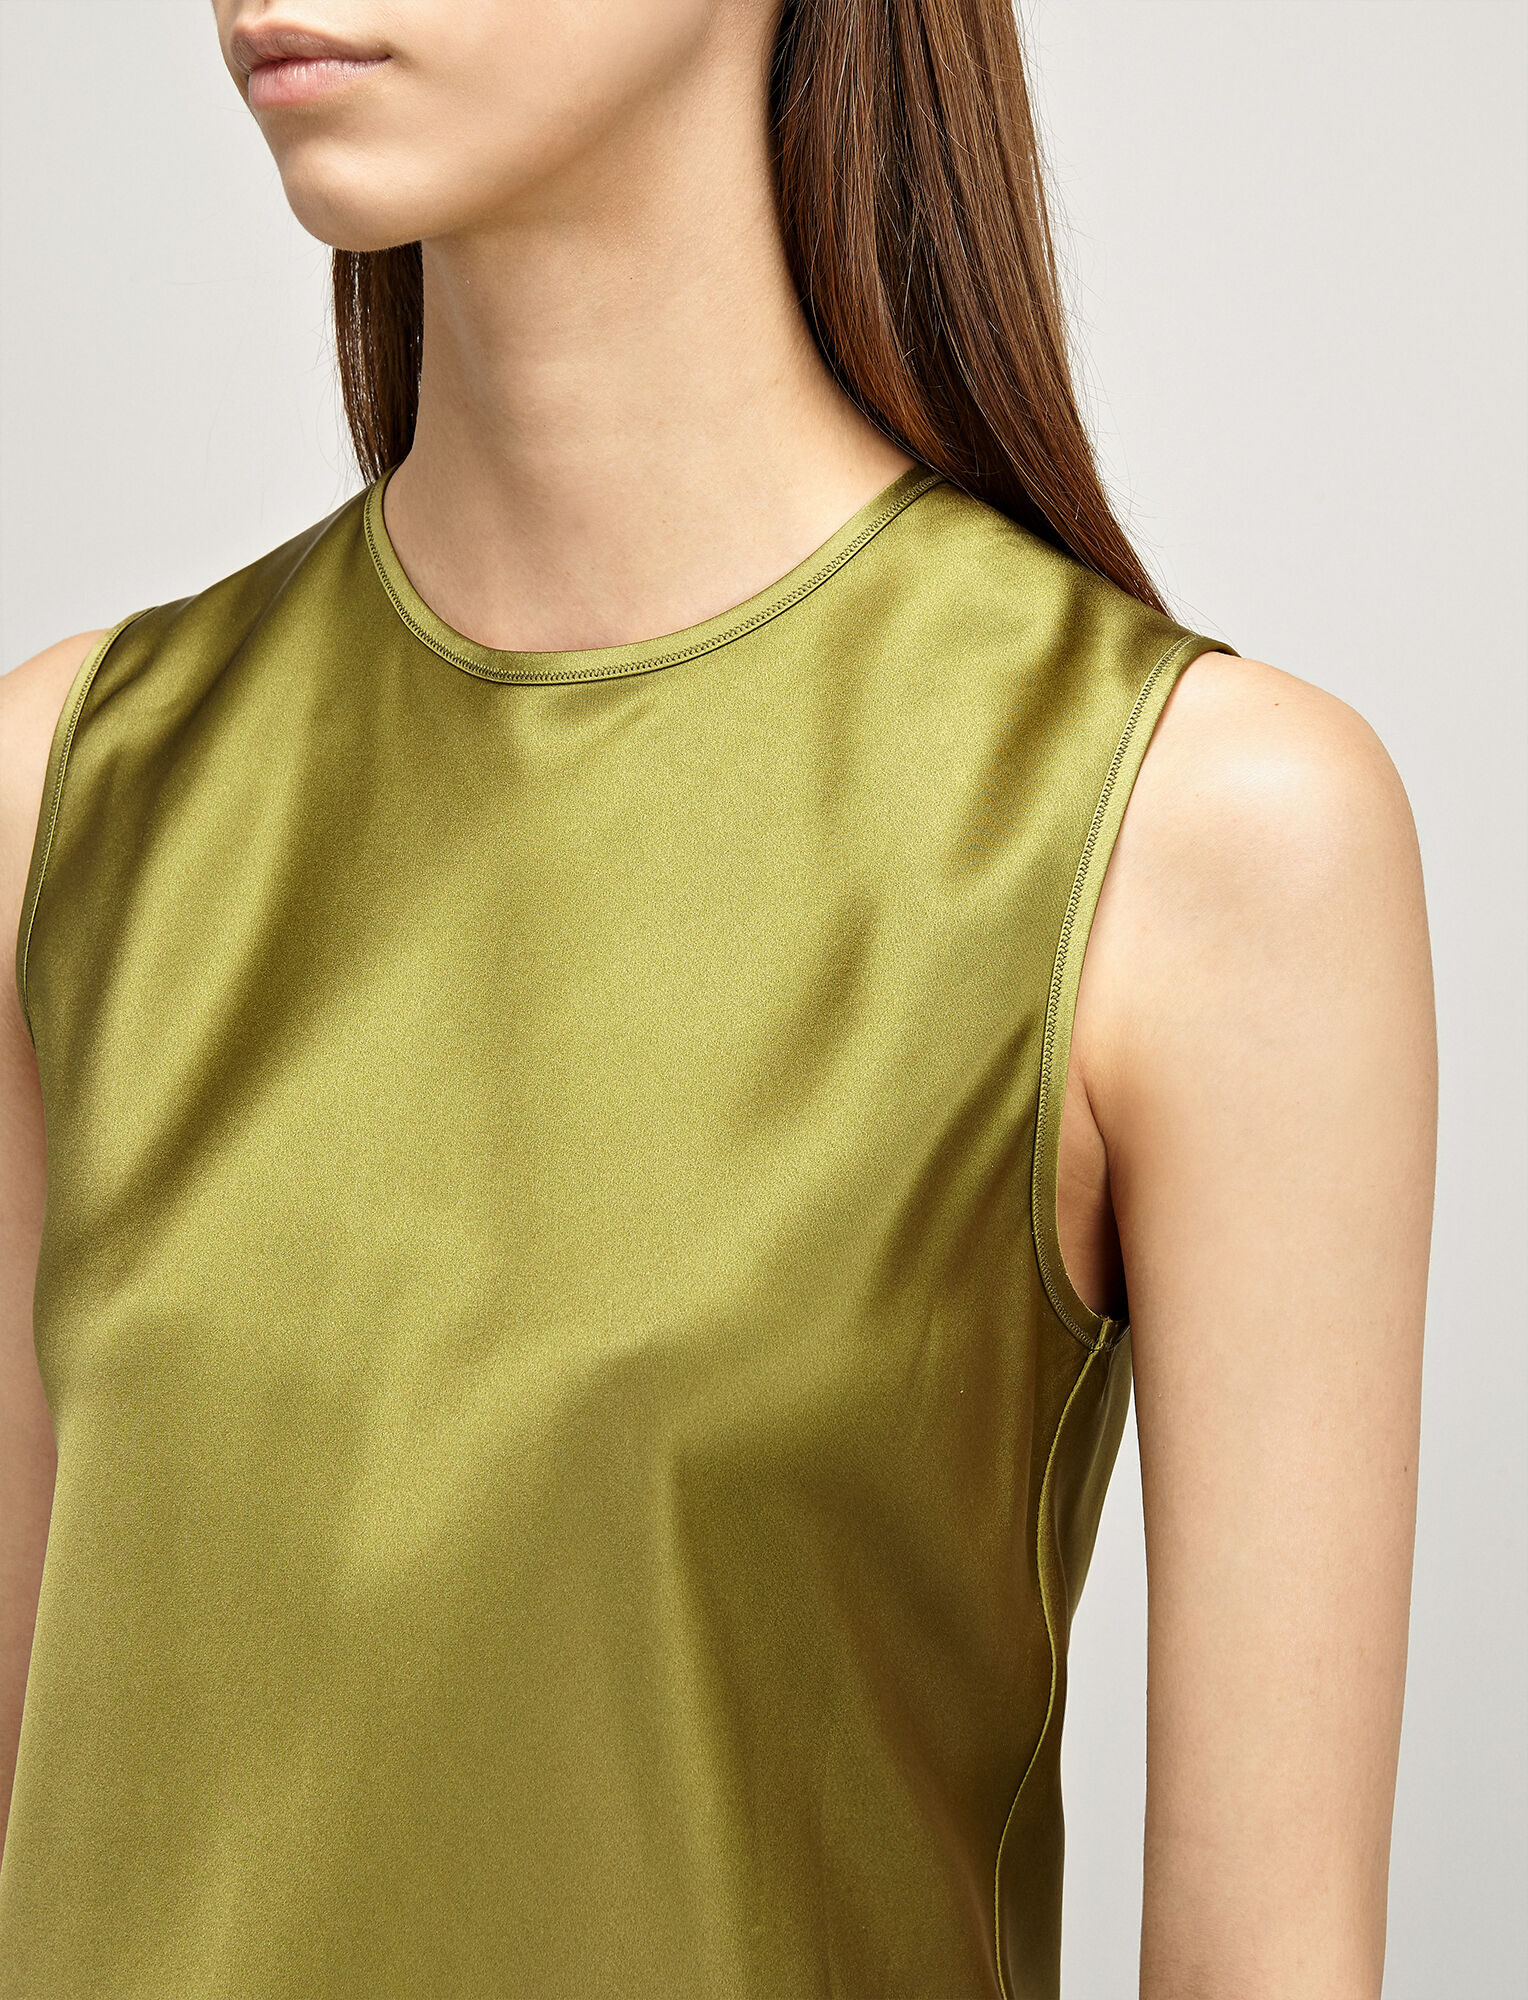 Joseph, Silk-Satin Lyle Blouse, in PEA